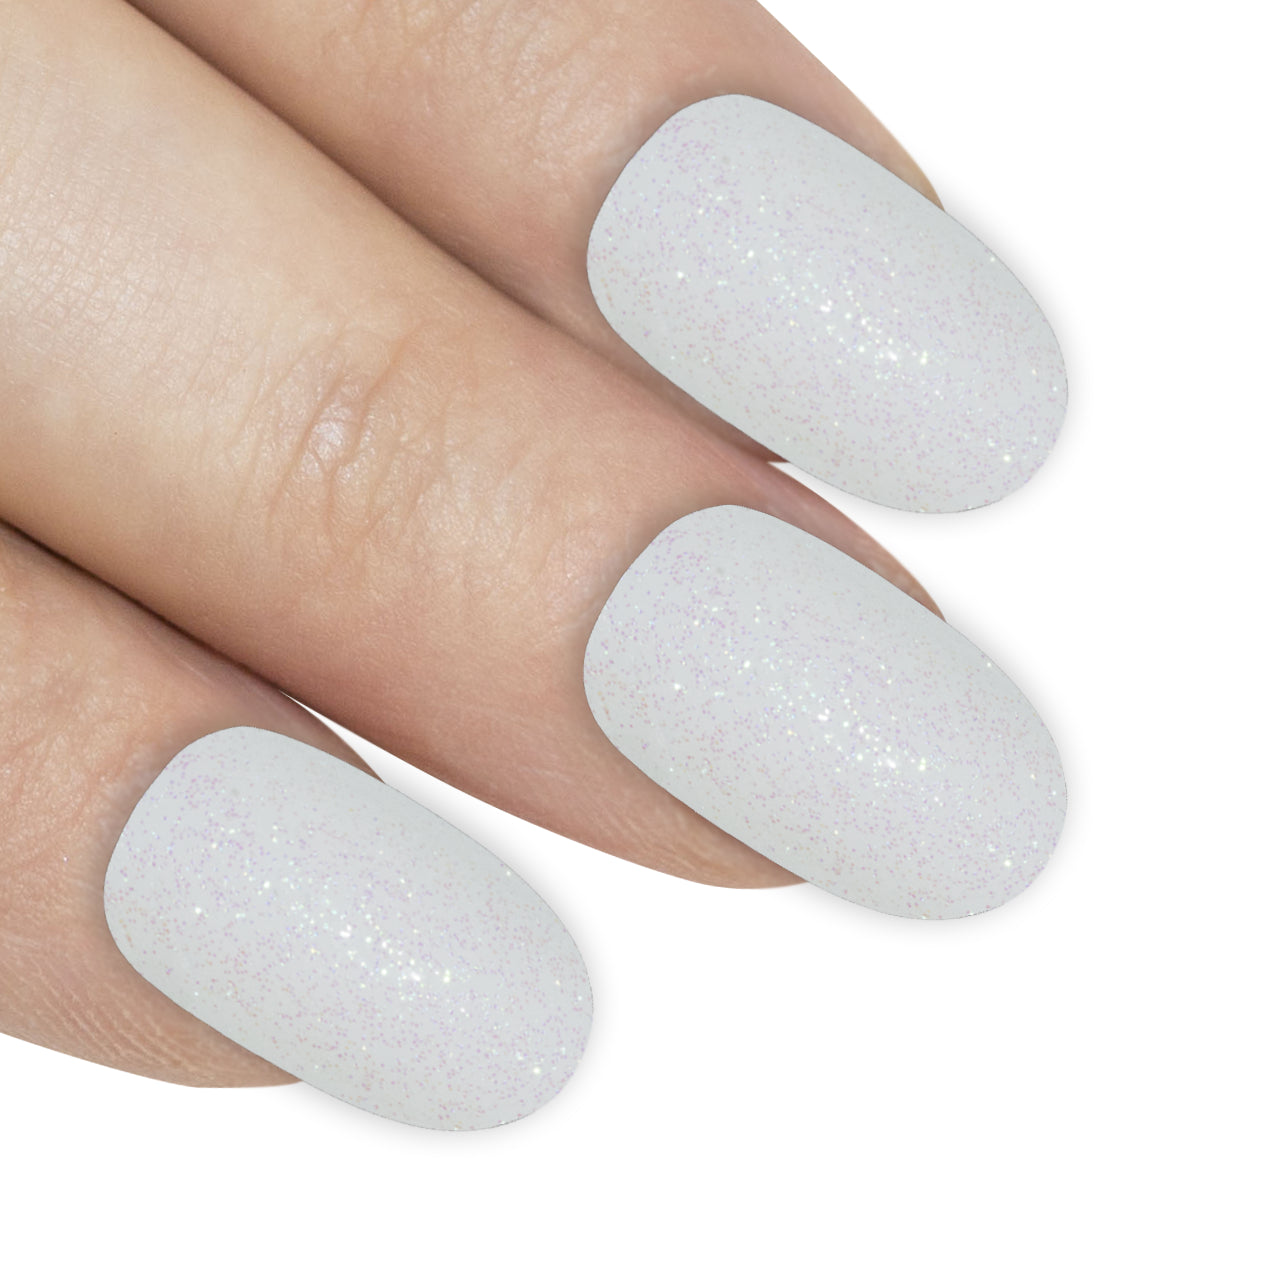 False Nails by Bling Art White Gel Oval Medium Fake Acrylic 24 Tips with Glue, Health & Beauty by Bling Art